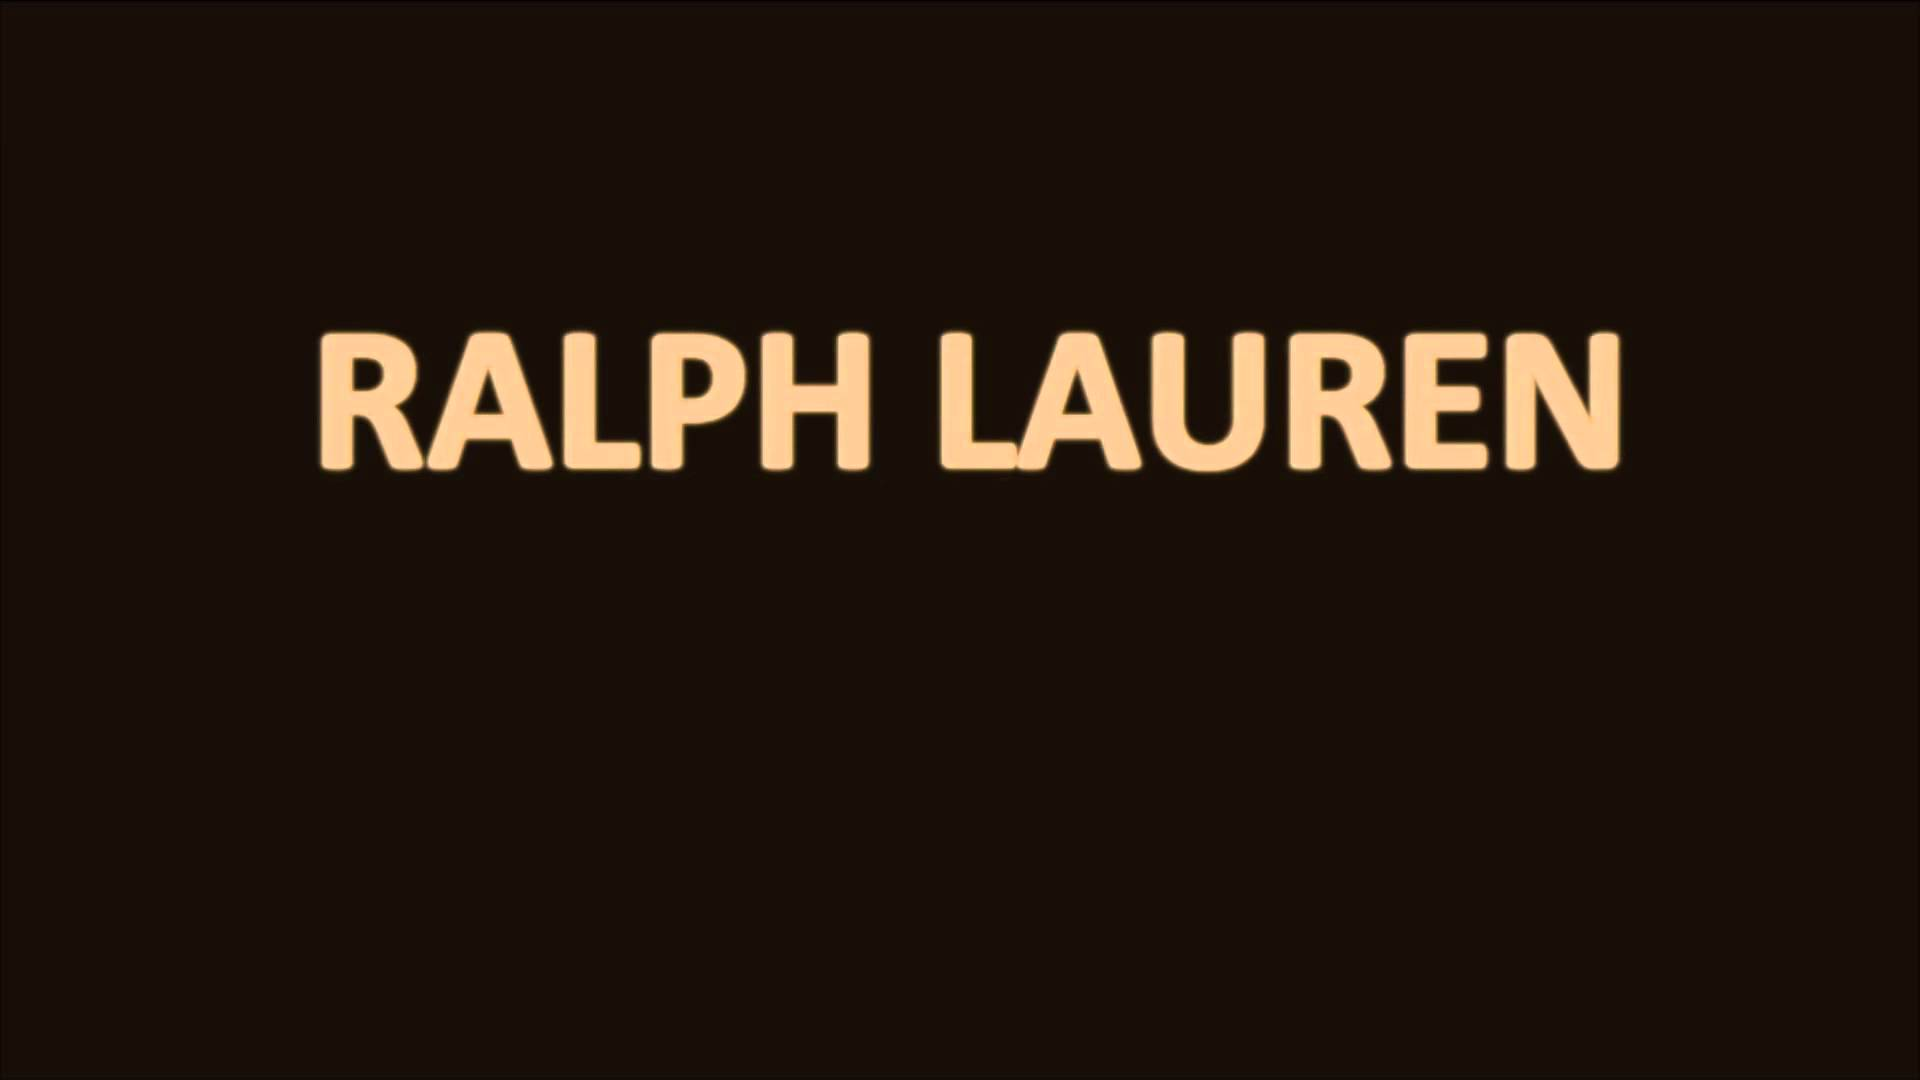 How to pronounce Ralph Lauren - YouTube